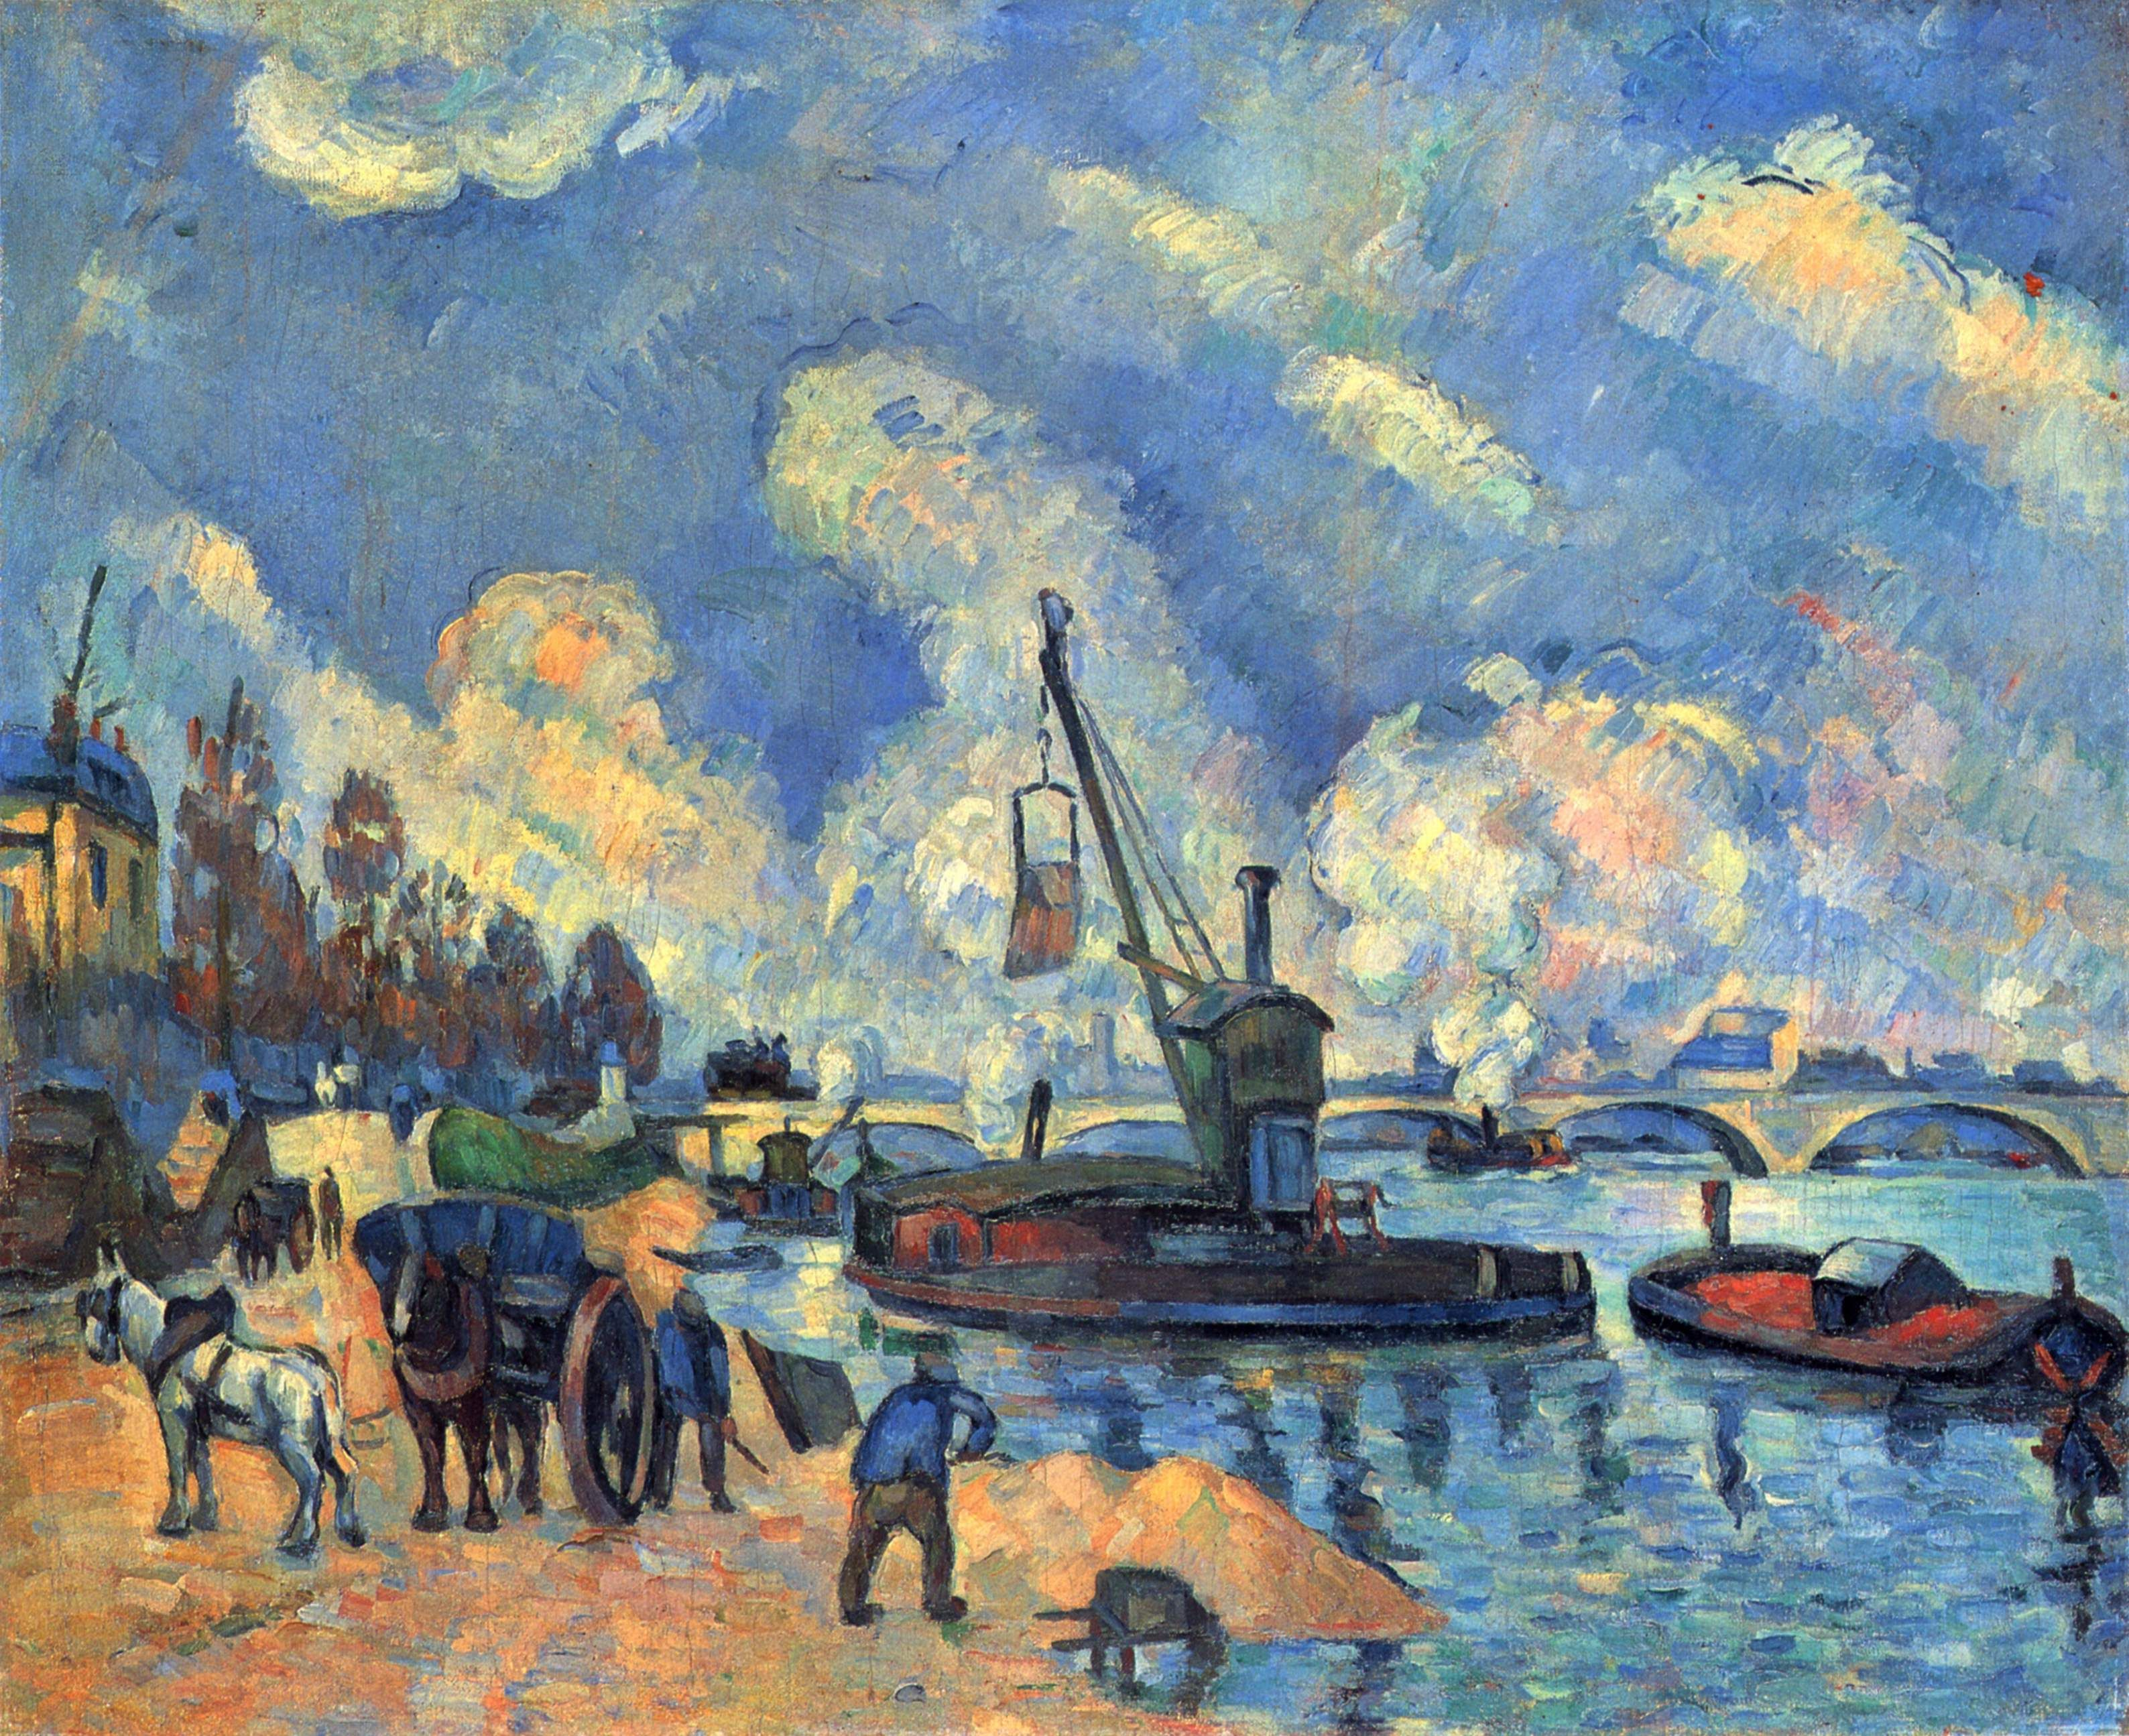 paul cezanne most famous works the seine at bercy